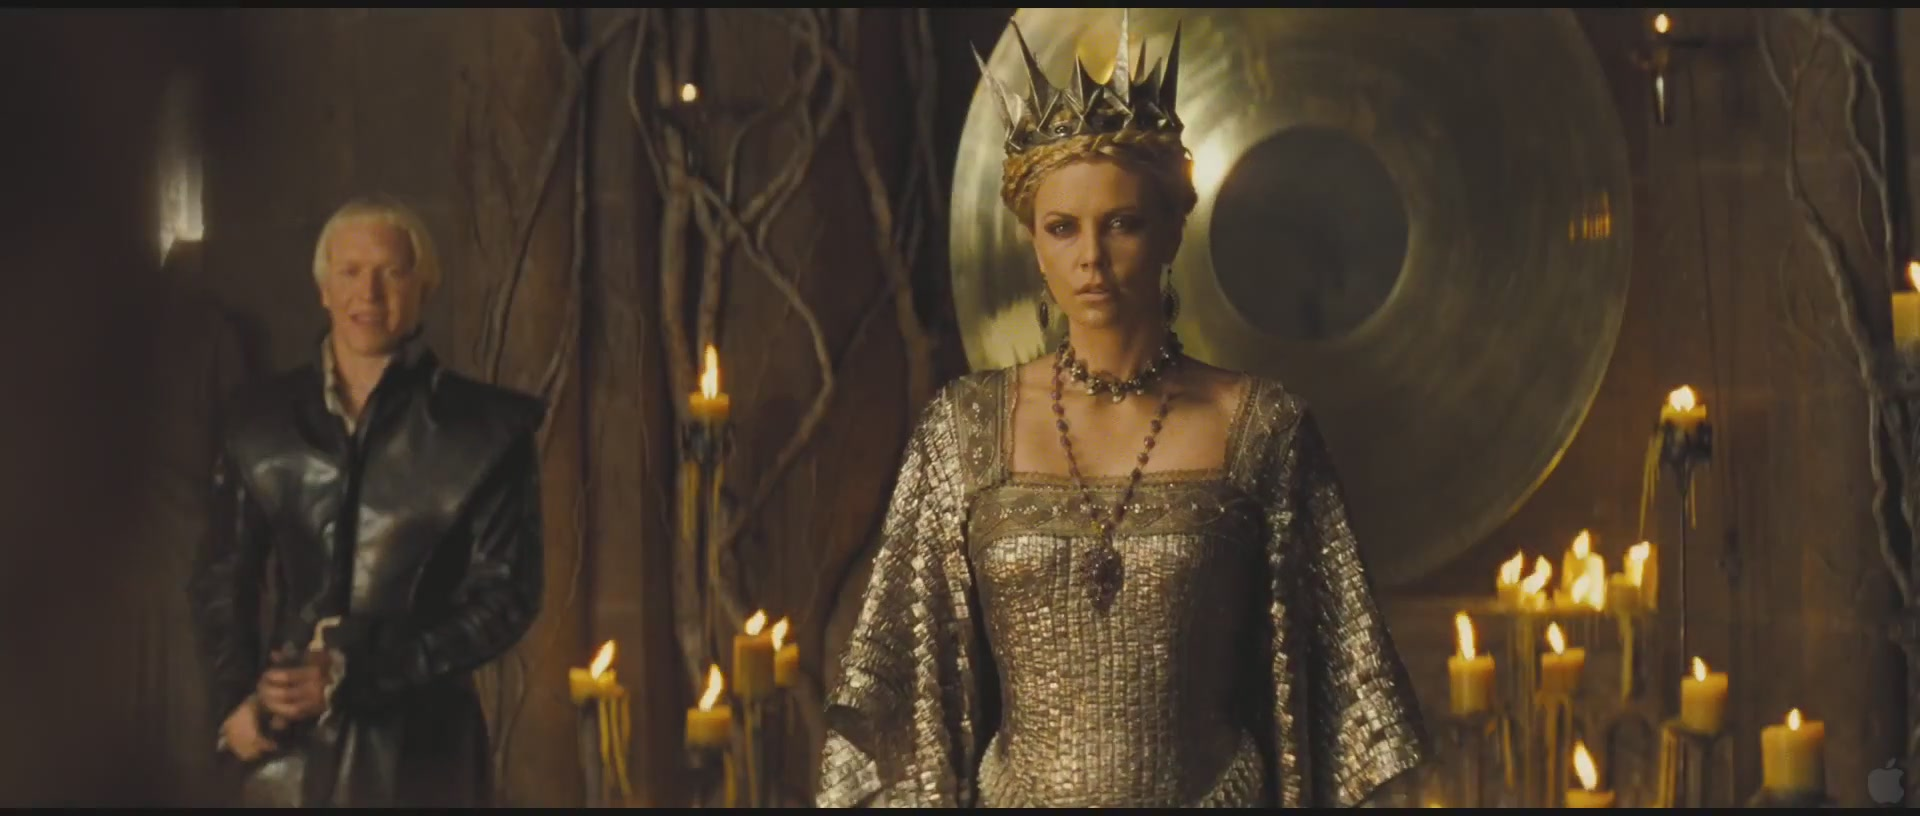 Snow-White-and-the-Huntsman-official-Trailer-1-charlize-theron-26721306-1920-816